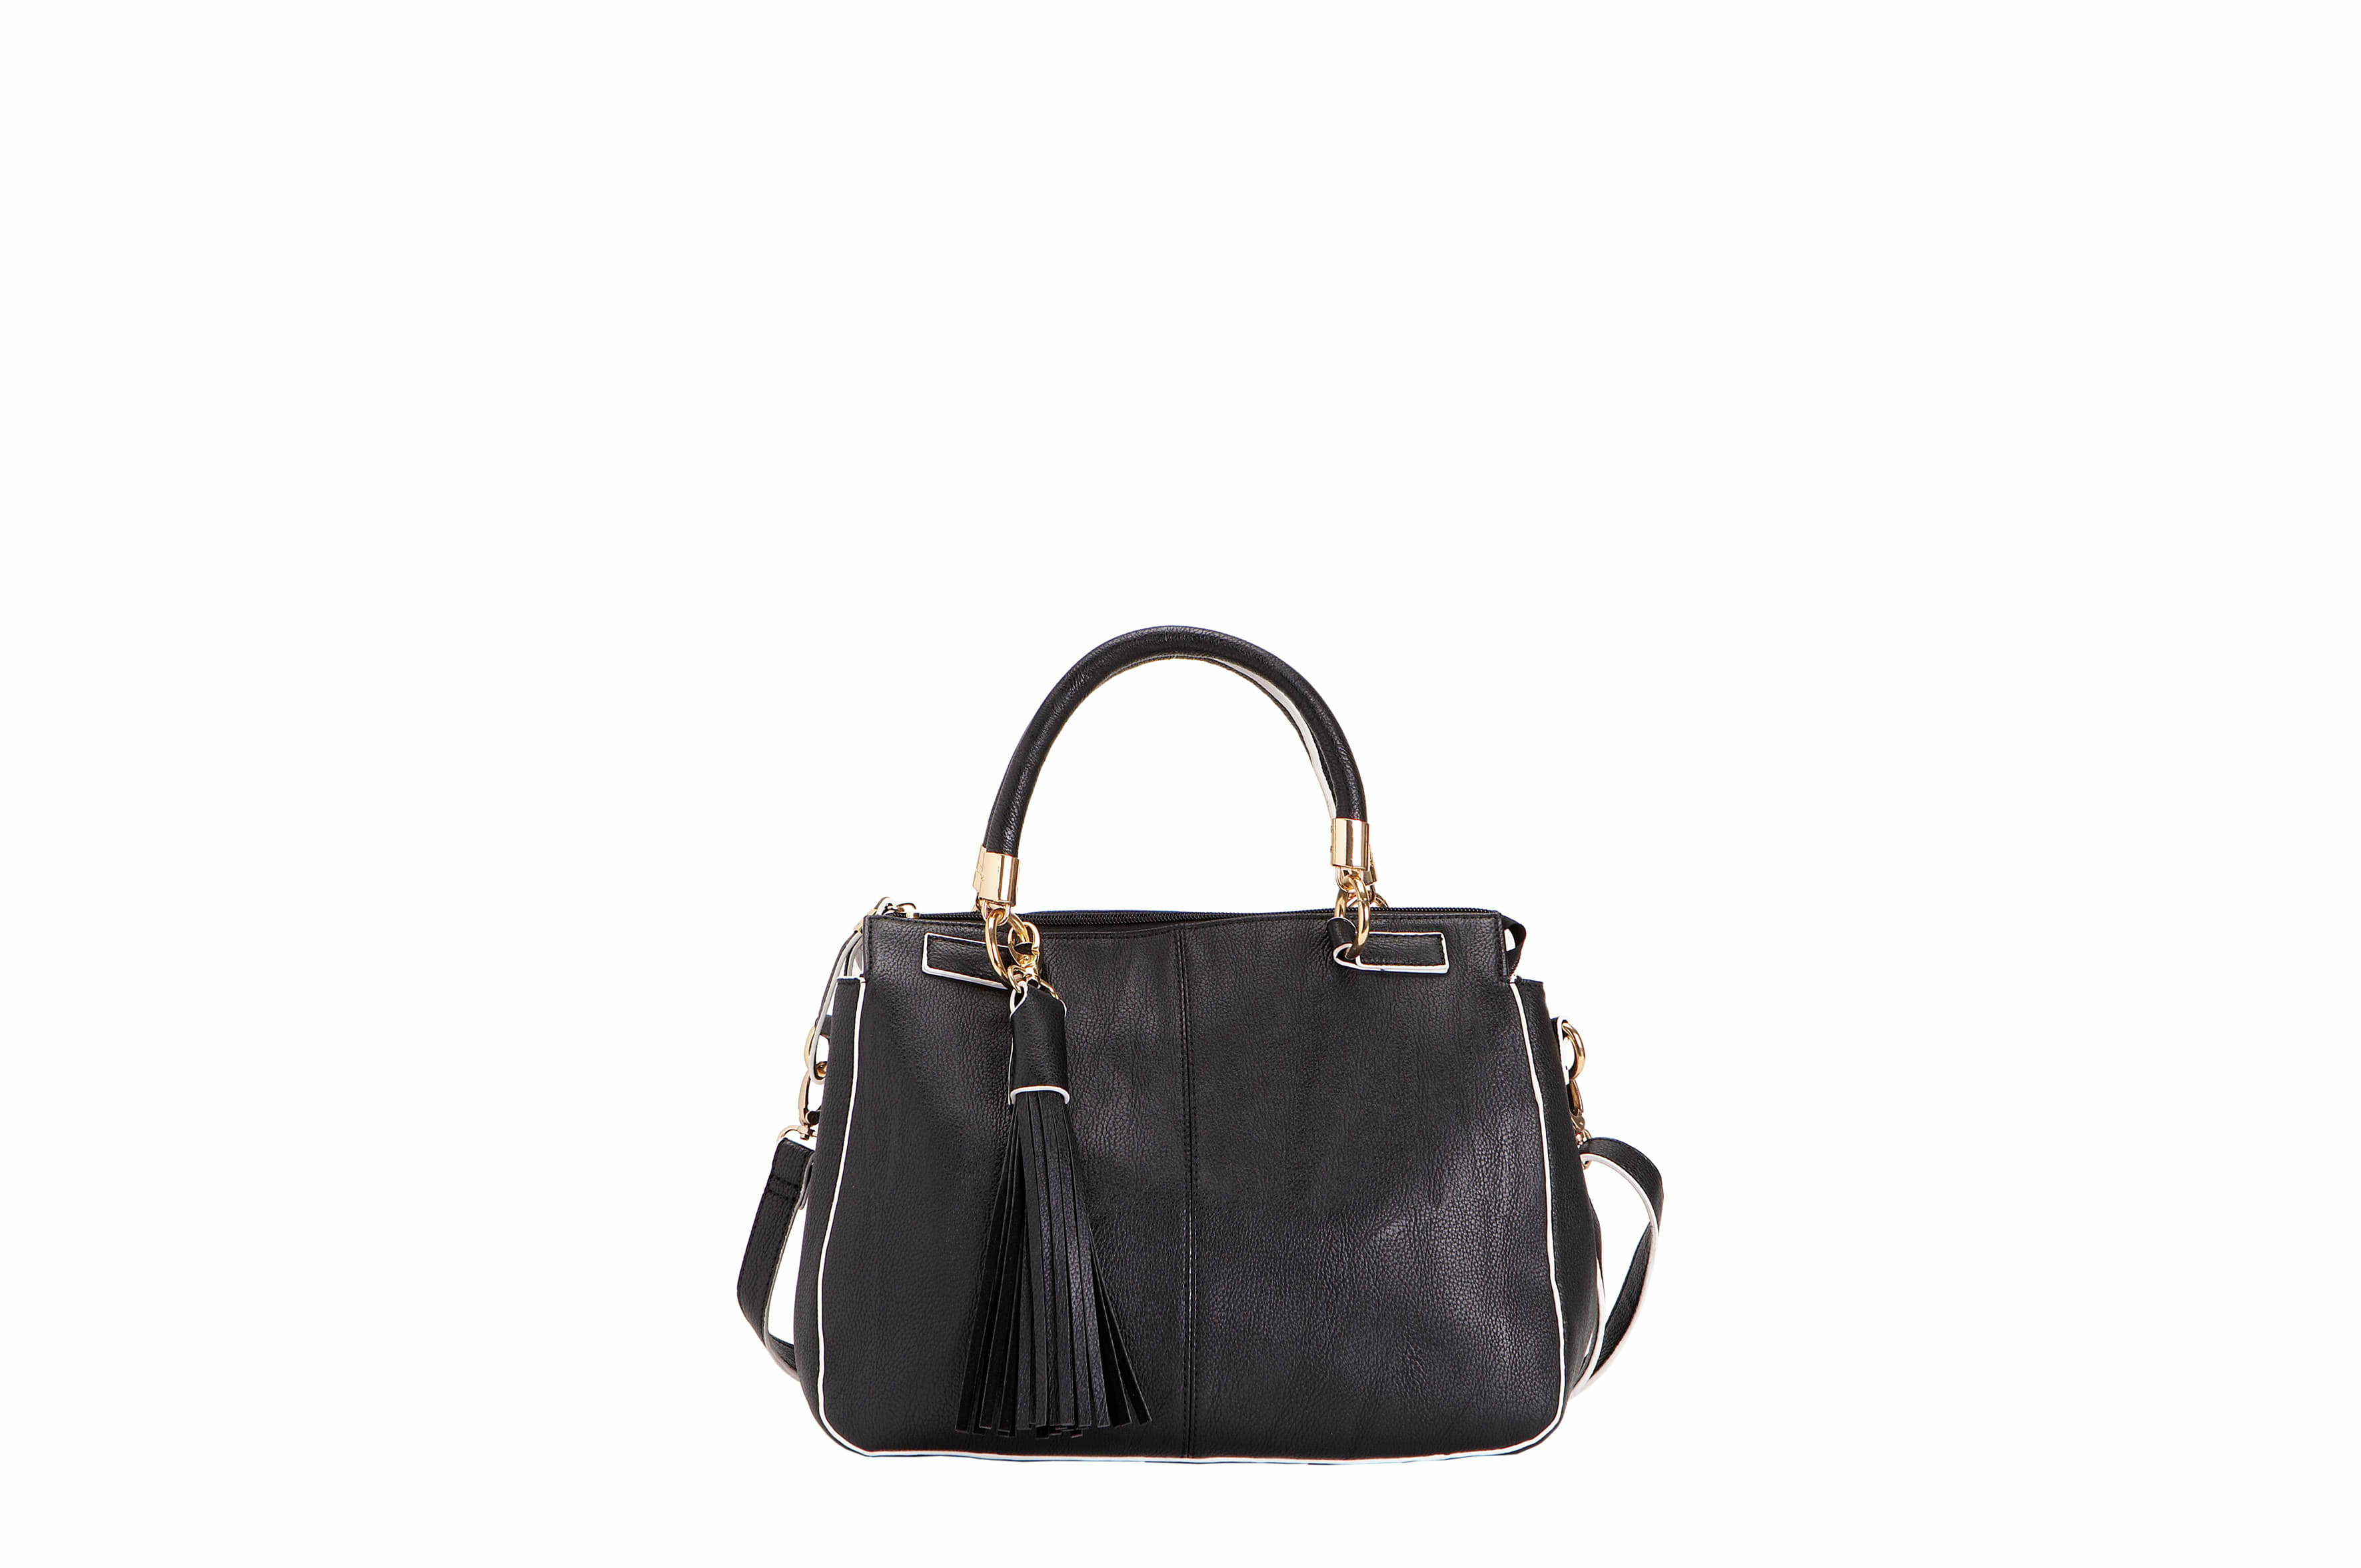 401203- AED 199 (2)